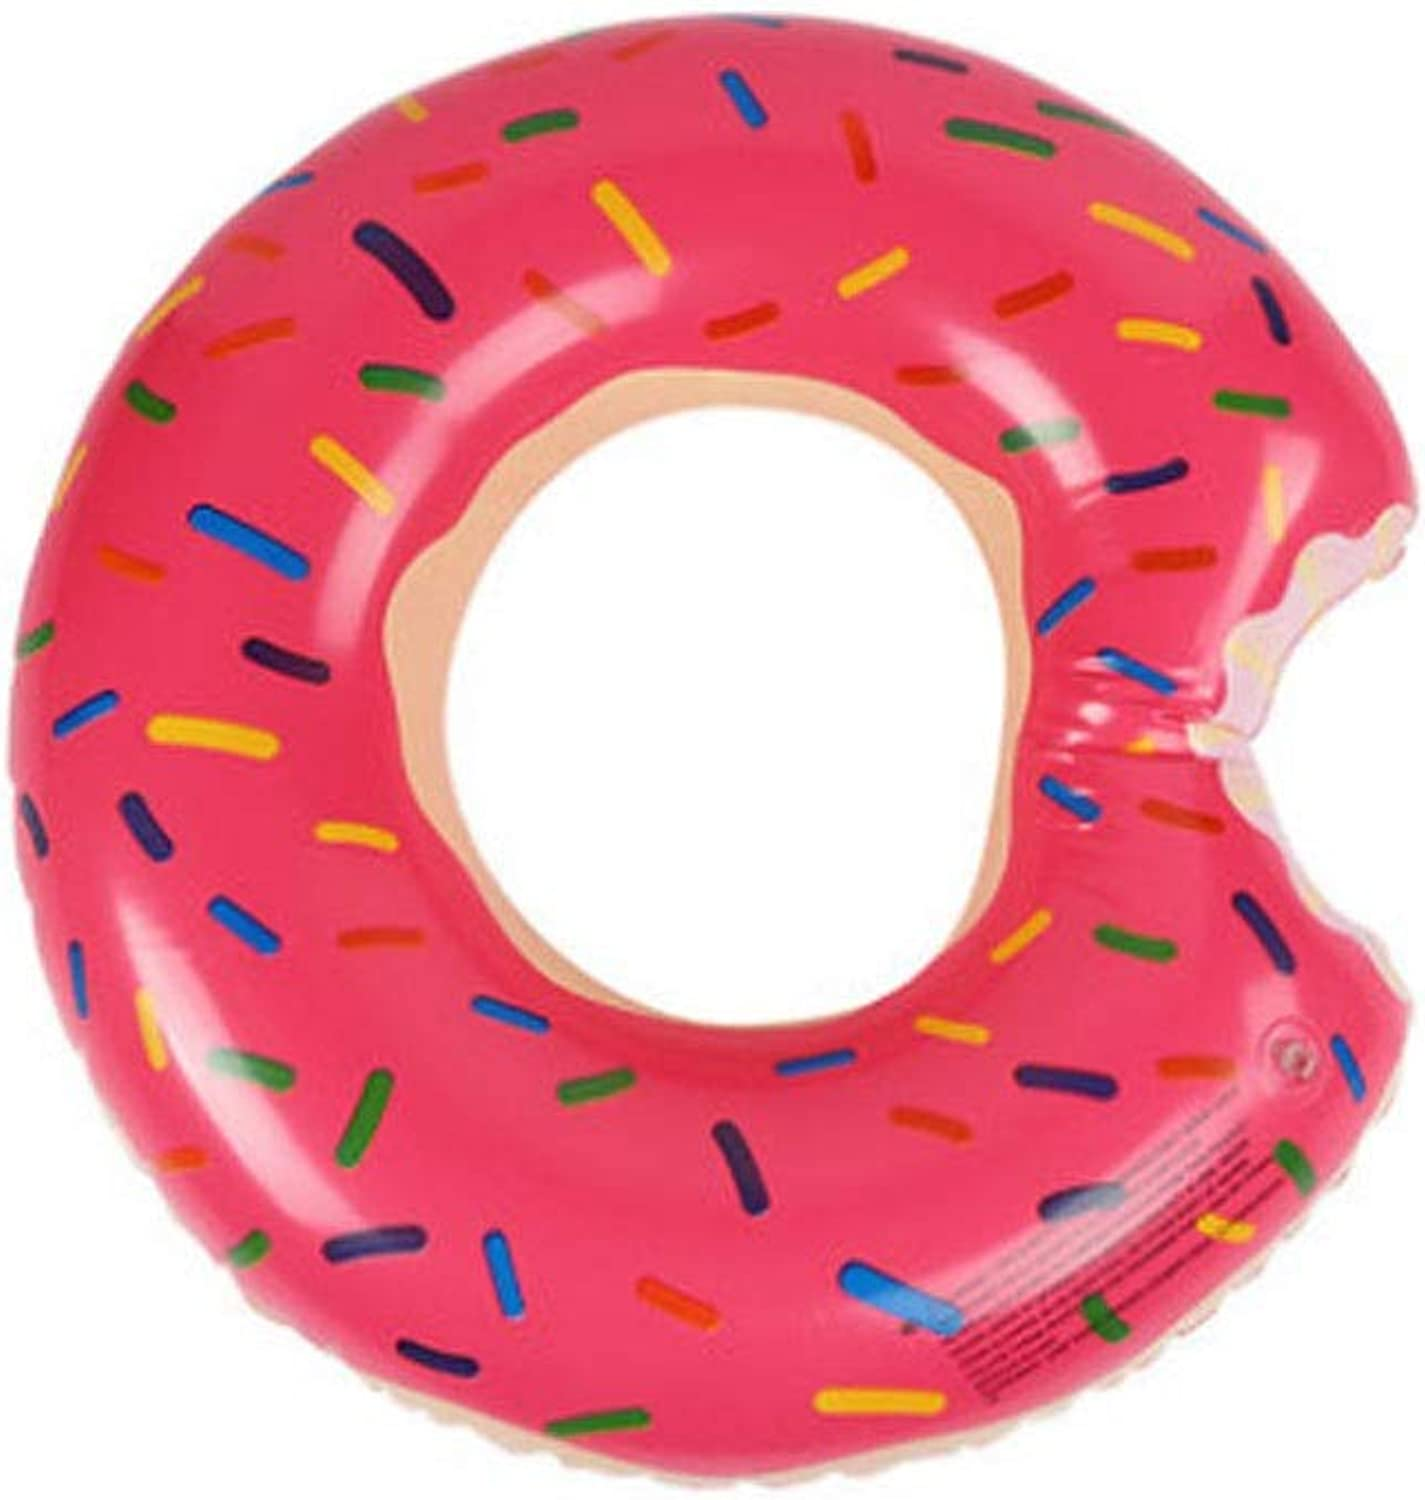 Yougou01 Swimming Ring, Donut Style Design, High Buoyancy Green Pvc Material, Suitable For All Kinds Of People, There Are Many Choices (pink, Brown) (color   Pink, Edition   6580kg)